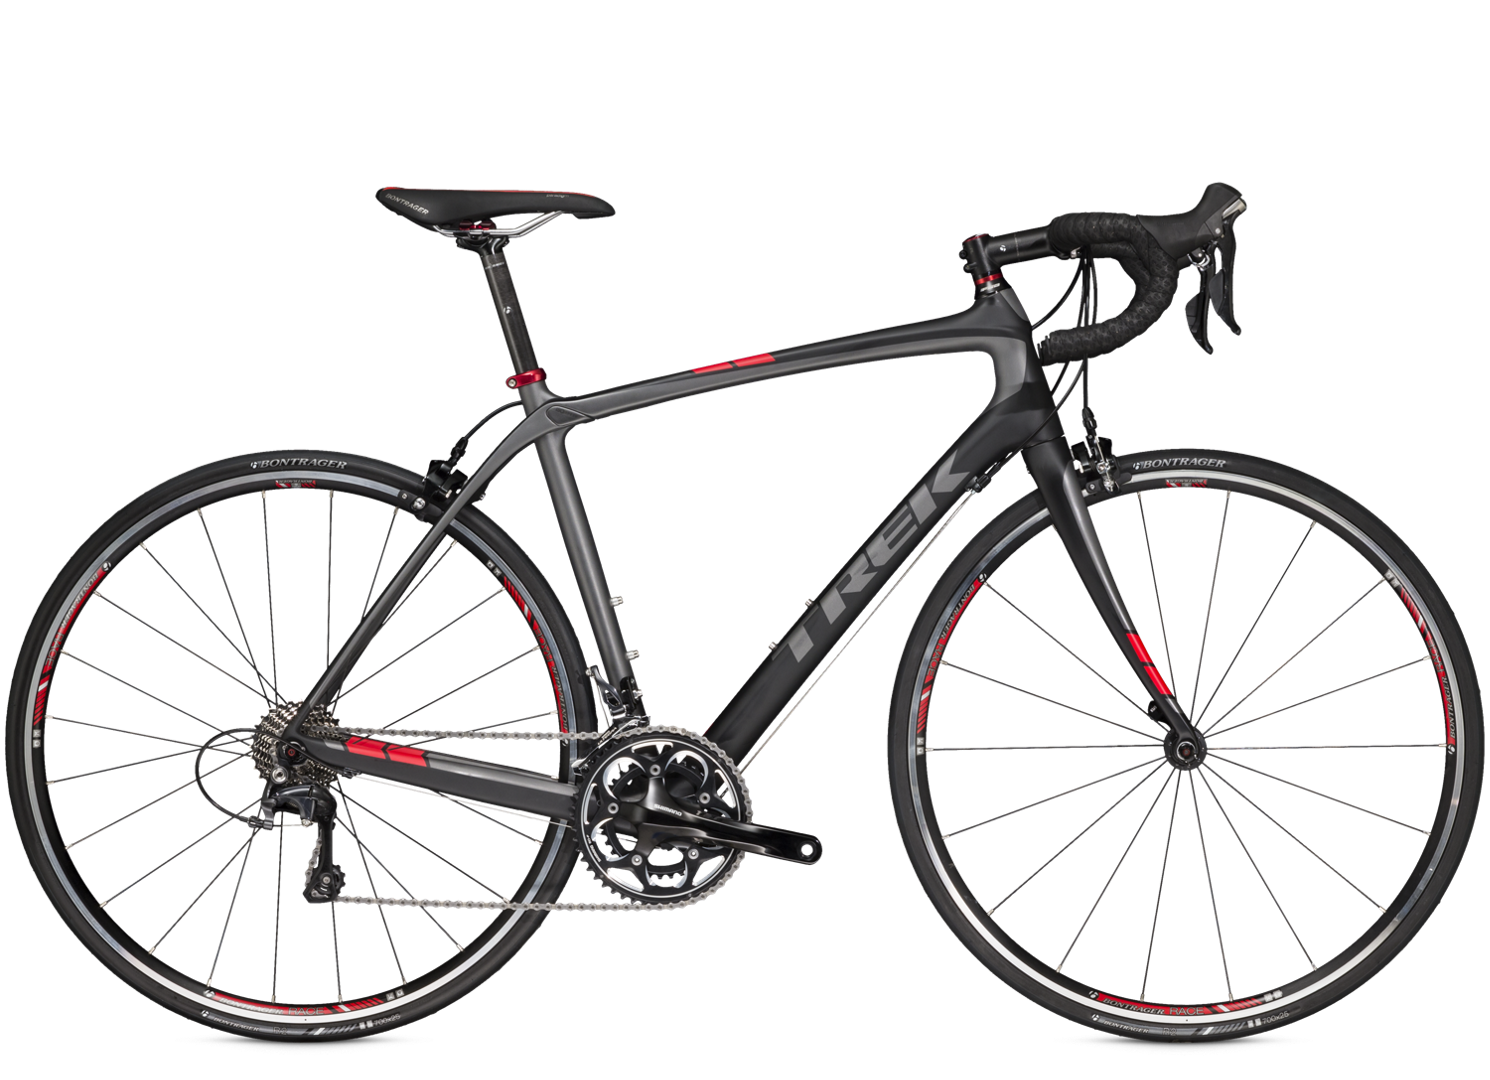 Road bike png. Domane compact archive